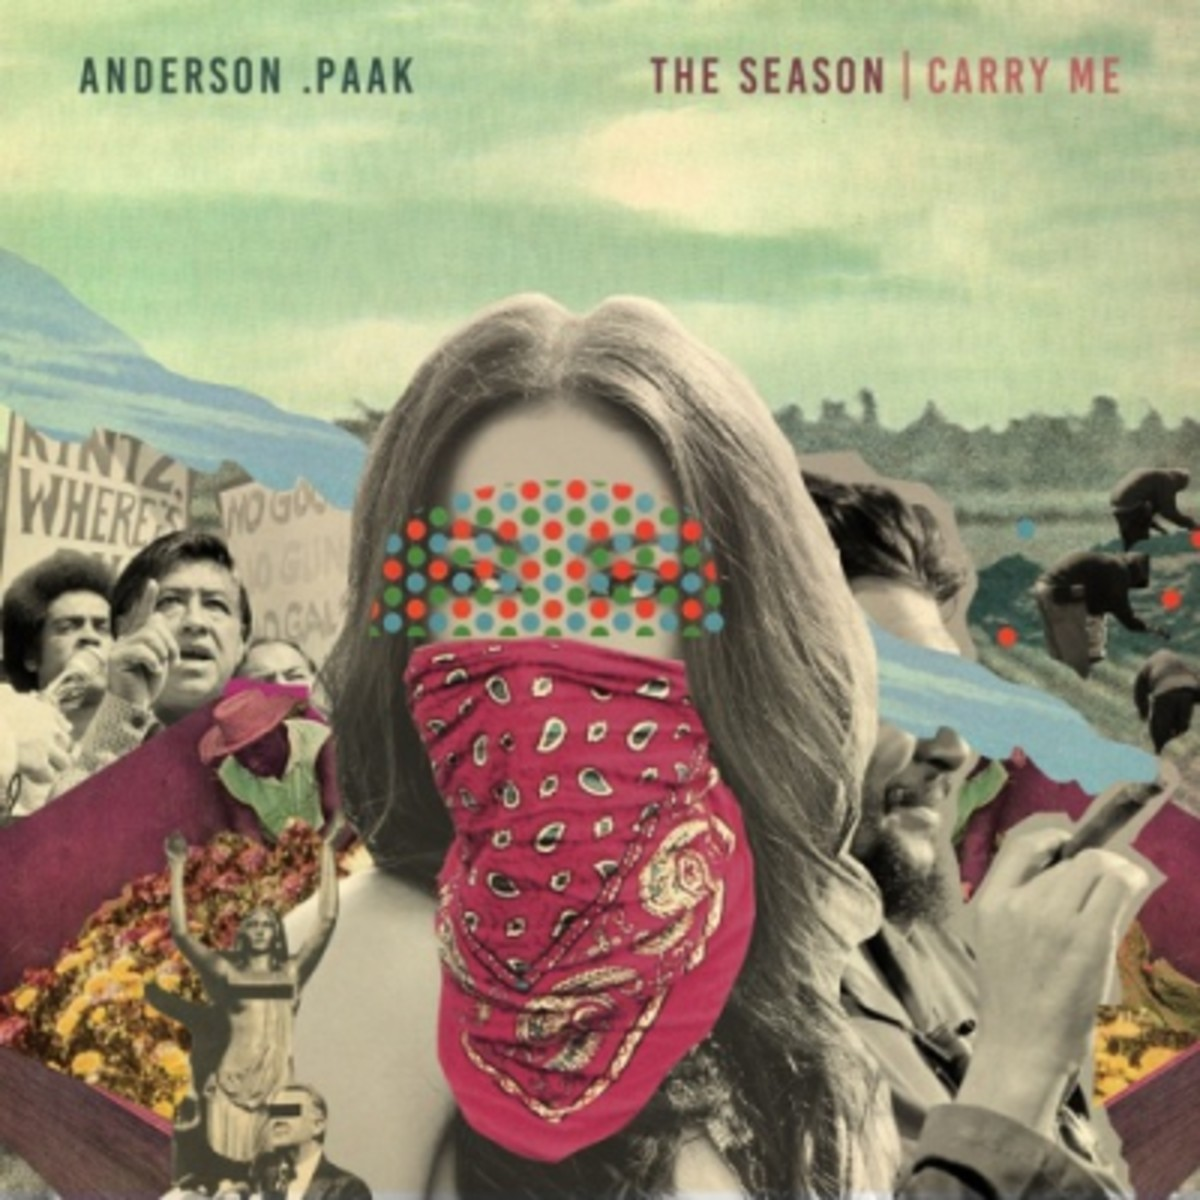 anderson-paak-the-season-carry-me.jpg